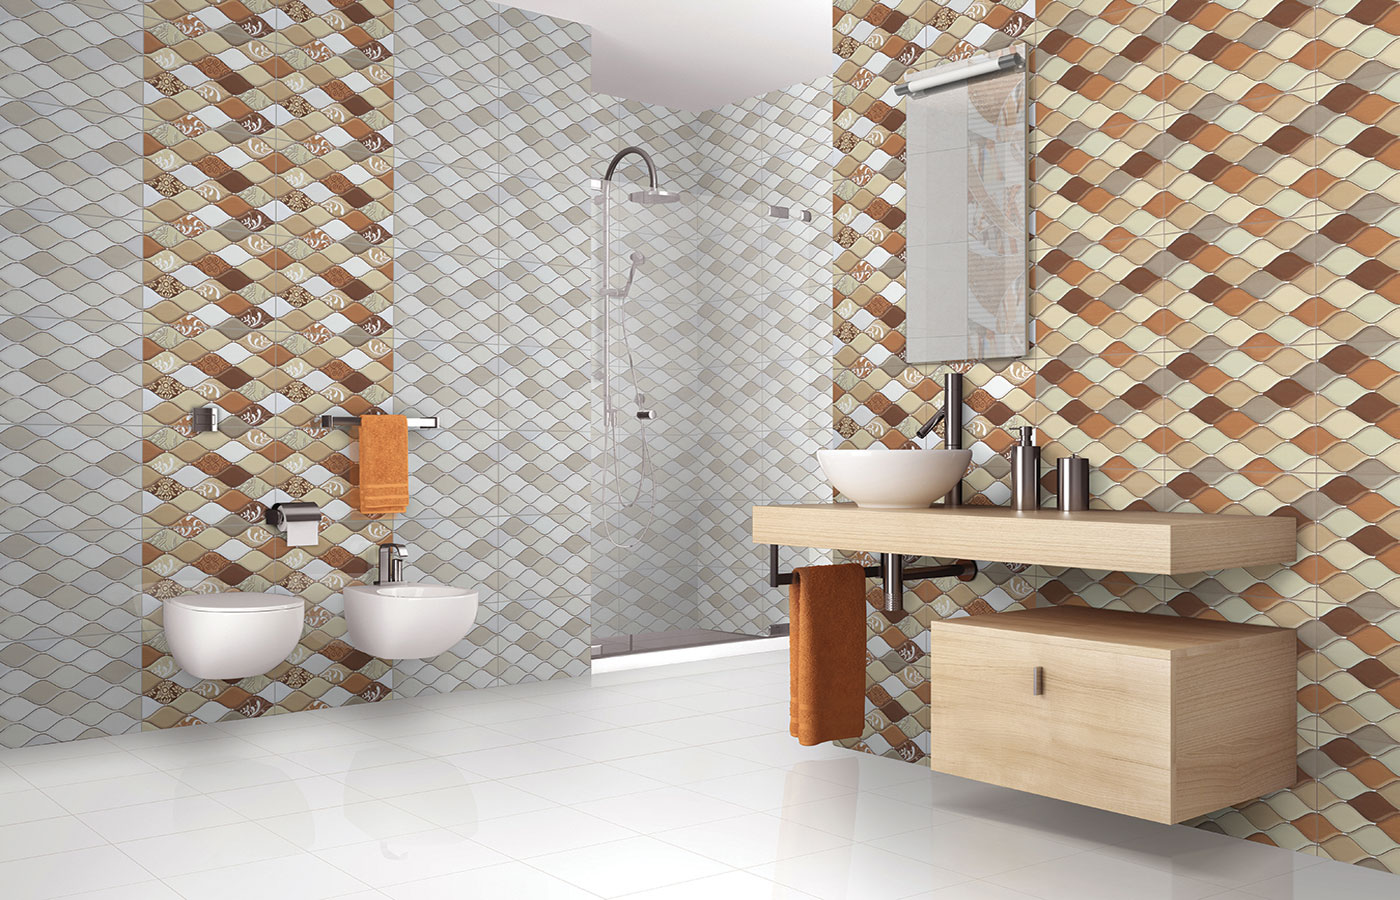 21 unique bathroom tile designs ideas and pictures for Bathroom wall tiles designs